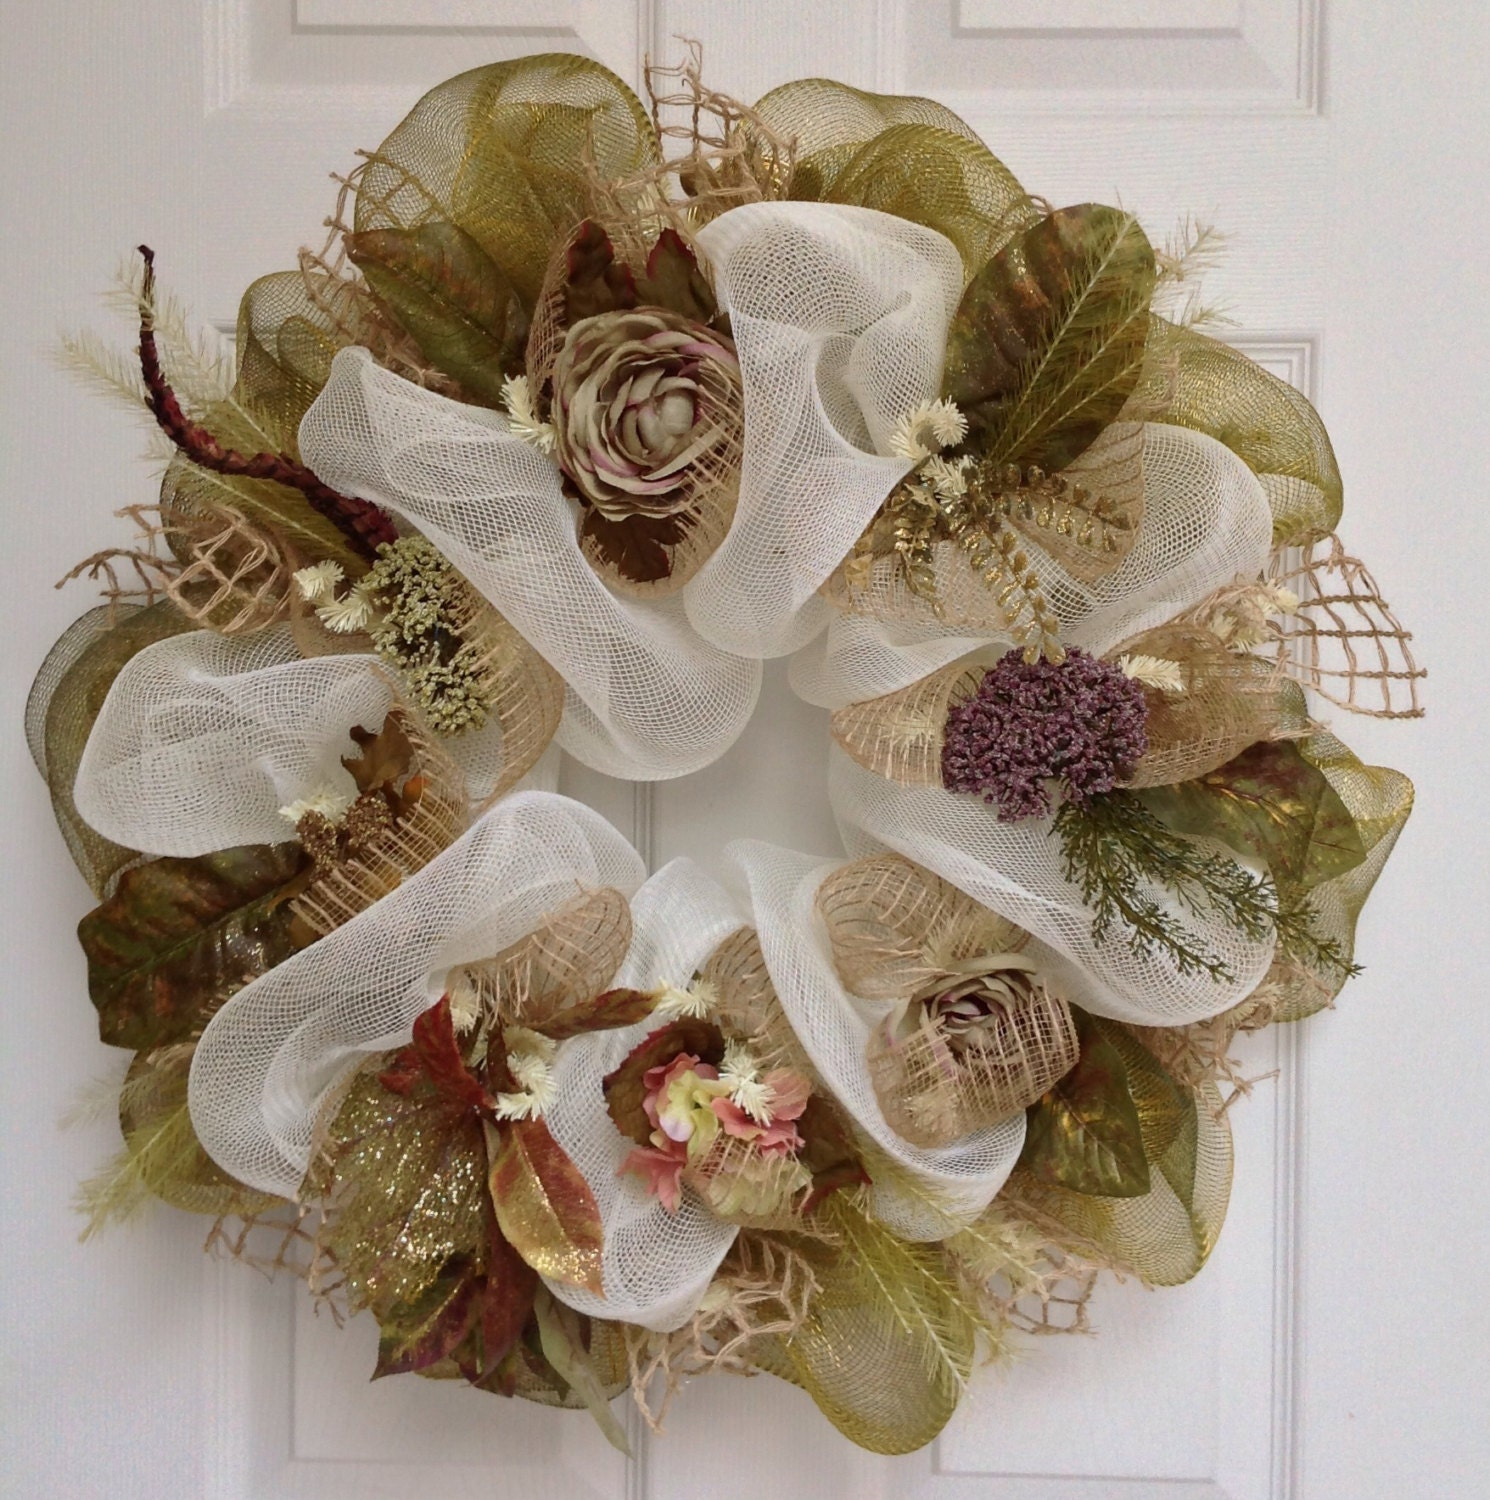 Deco Mesh Projects on Pinterest Fall Wreaths, Deco Mesh and Deco